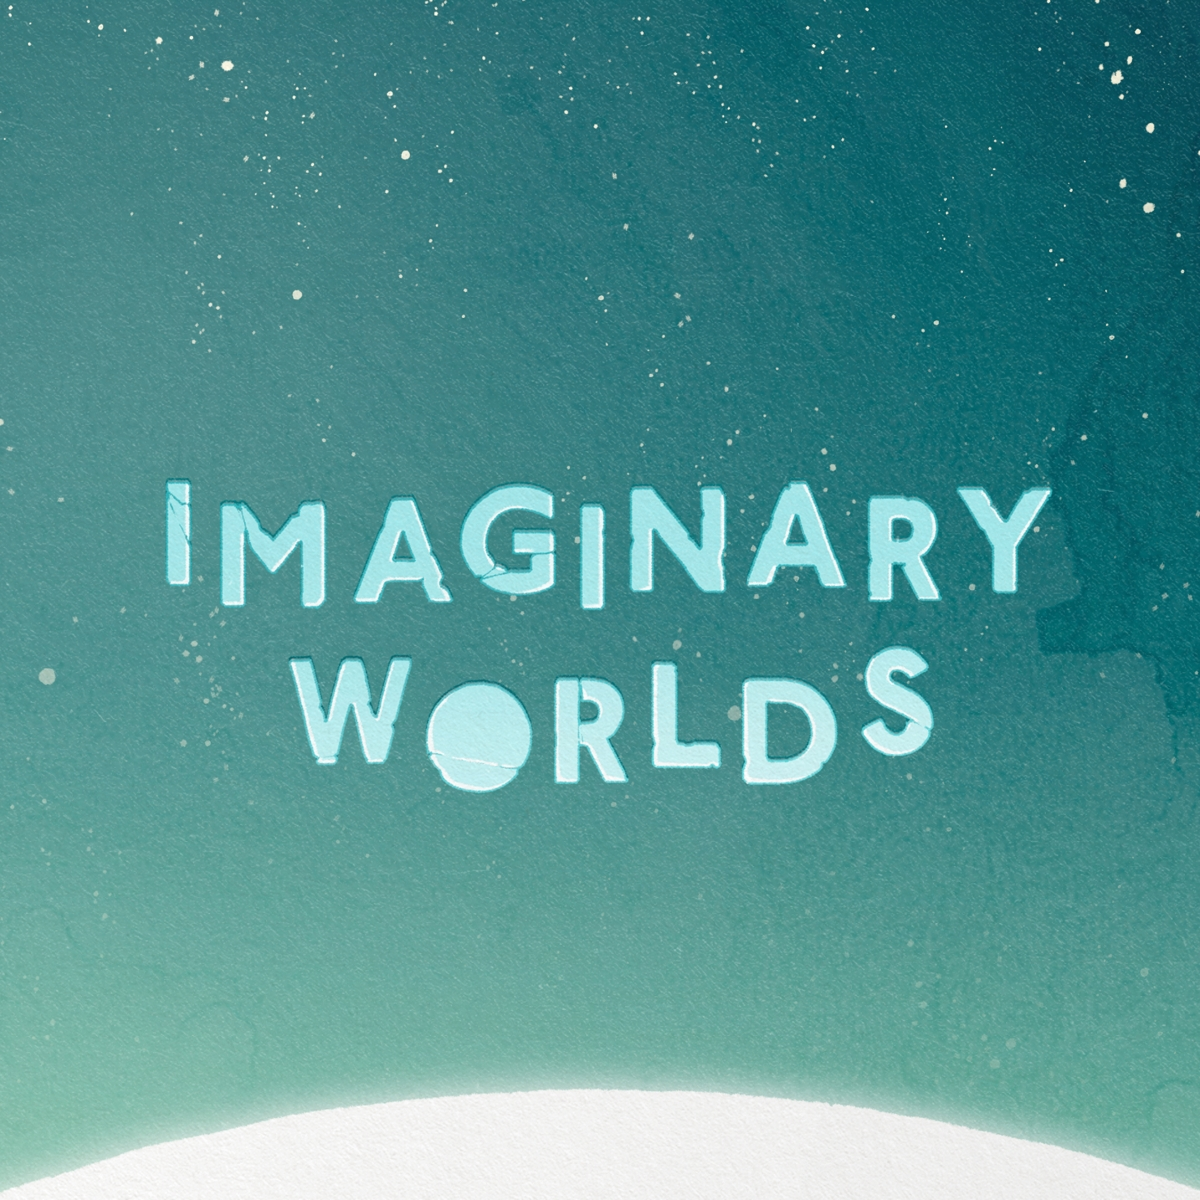 Illustrated Imaginary Worlds typography.